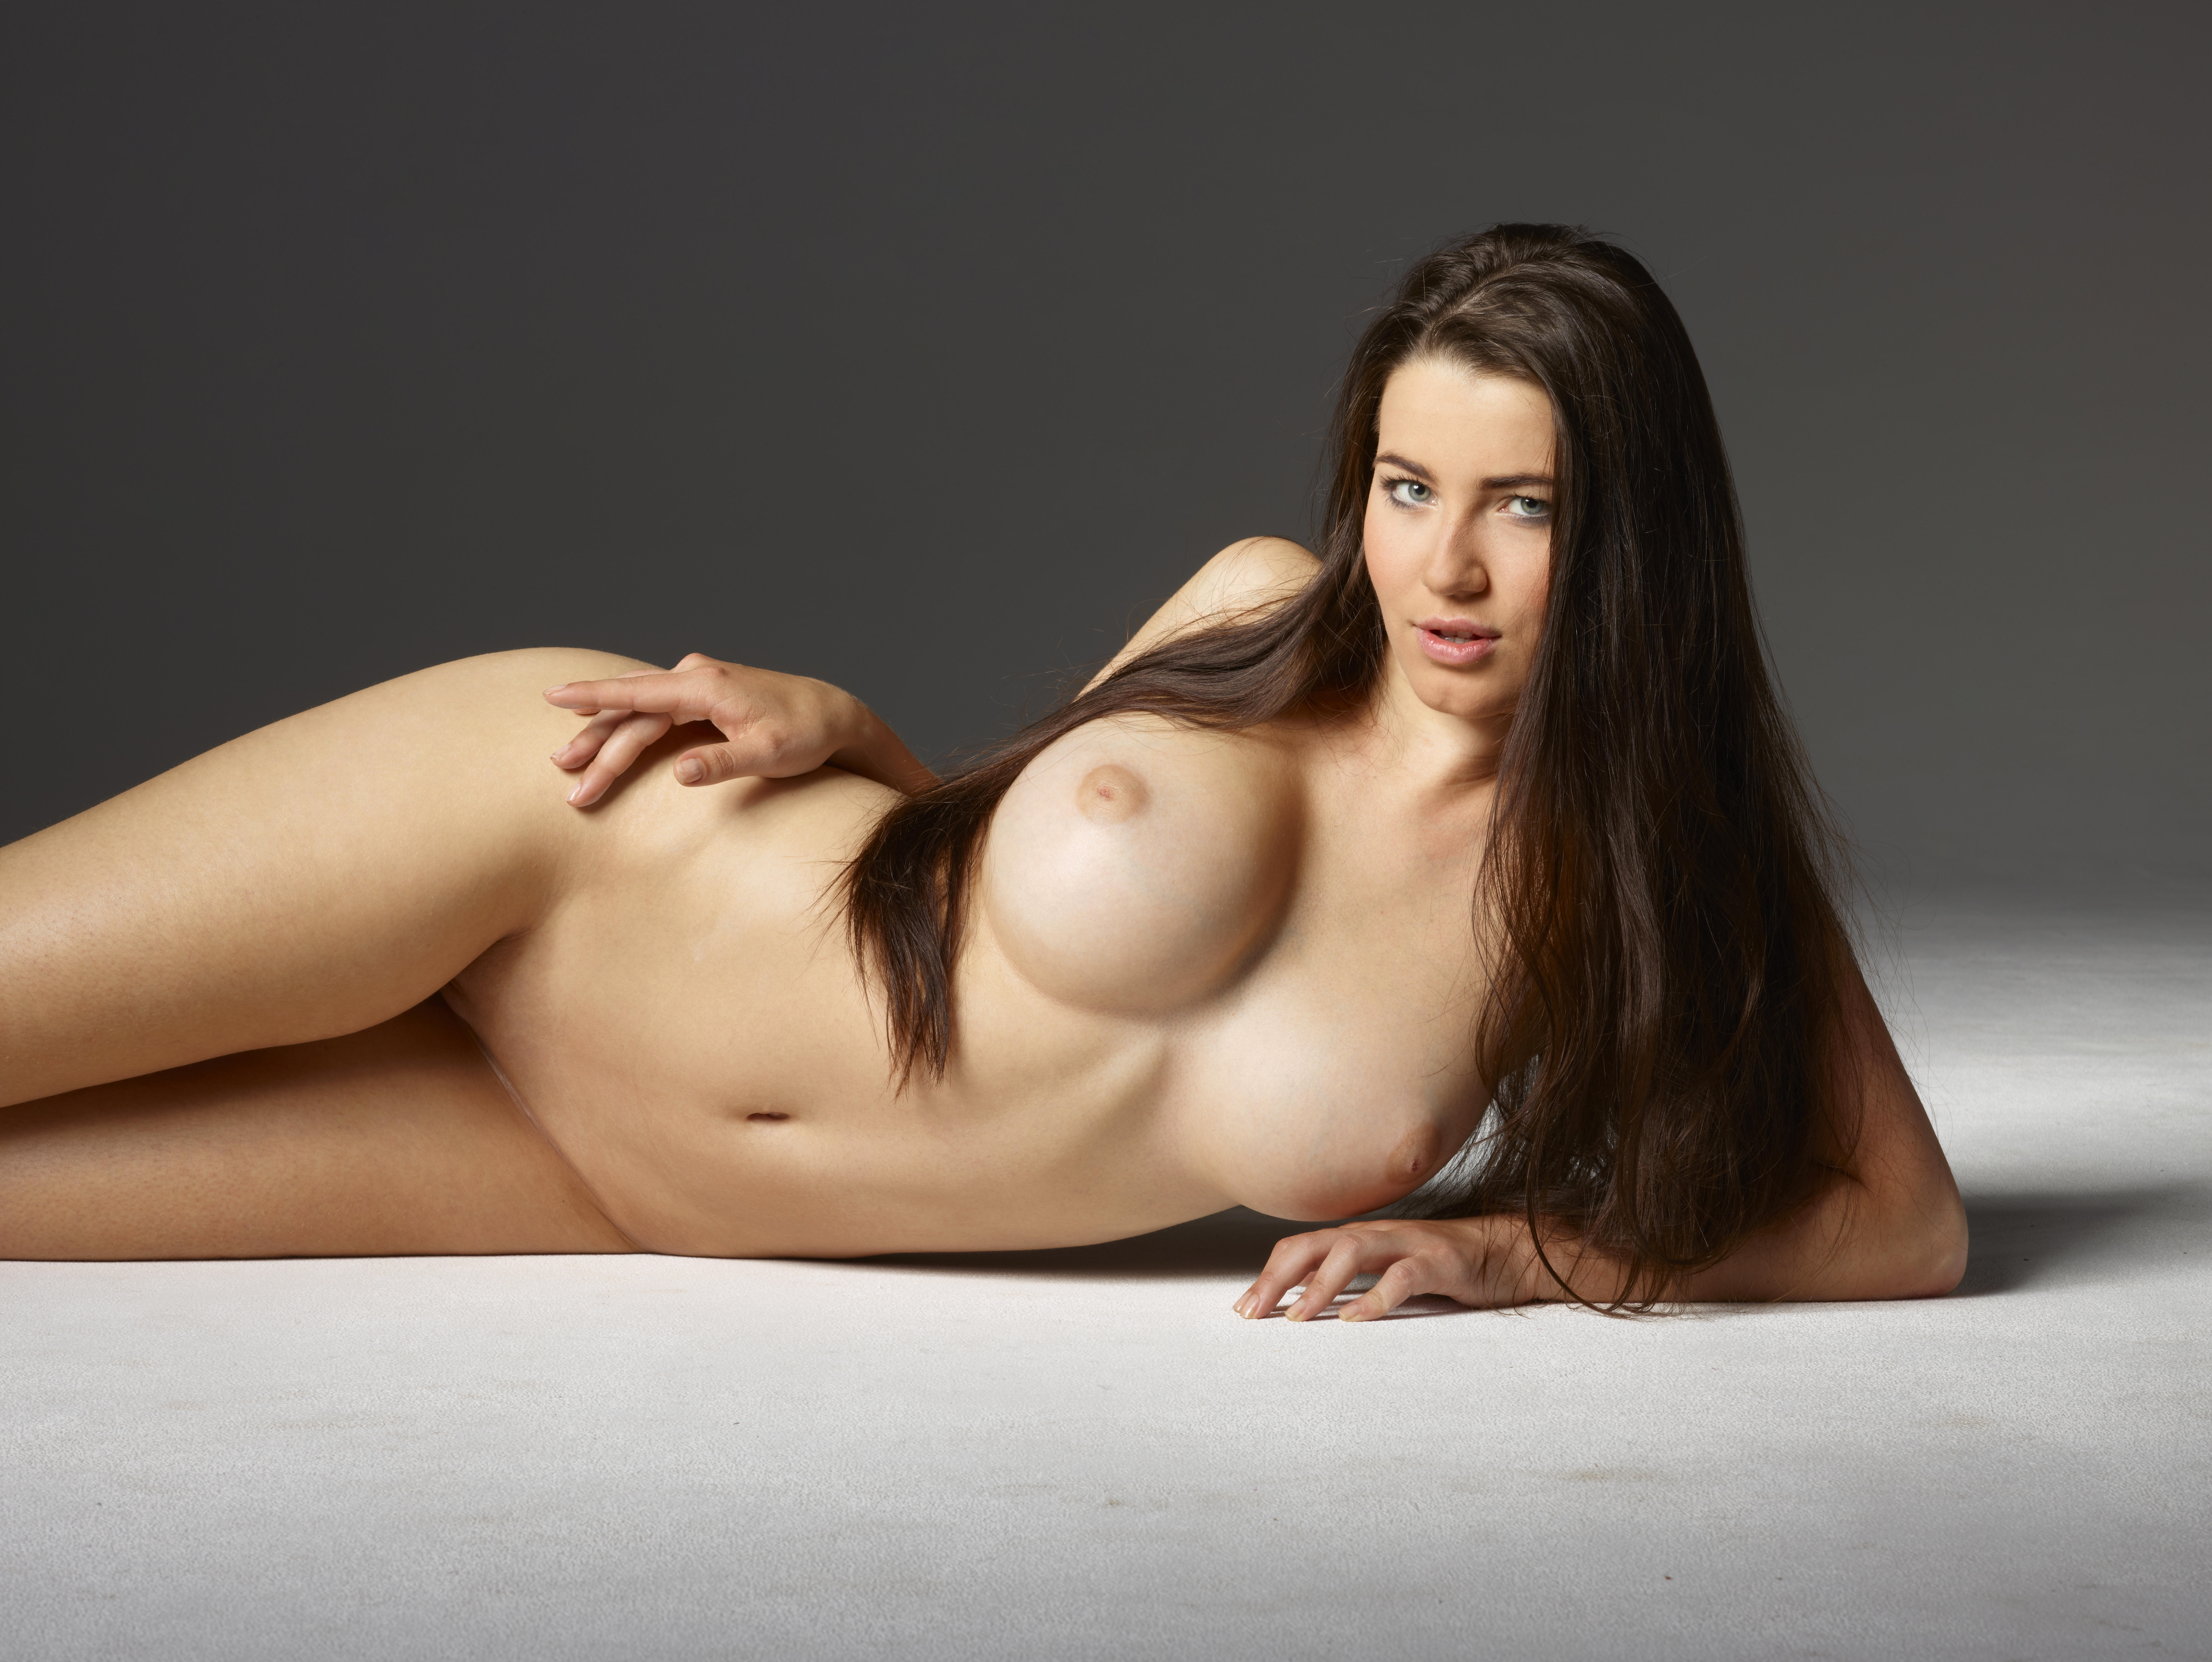 Accept. The Imagefap pose naked after sex will